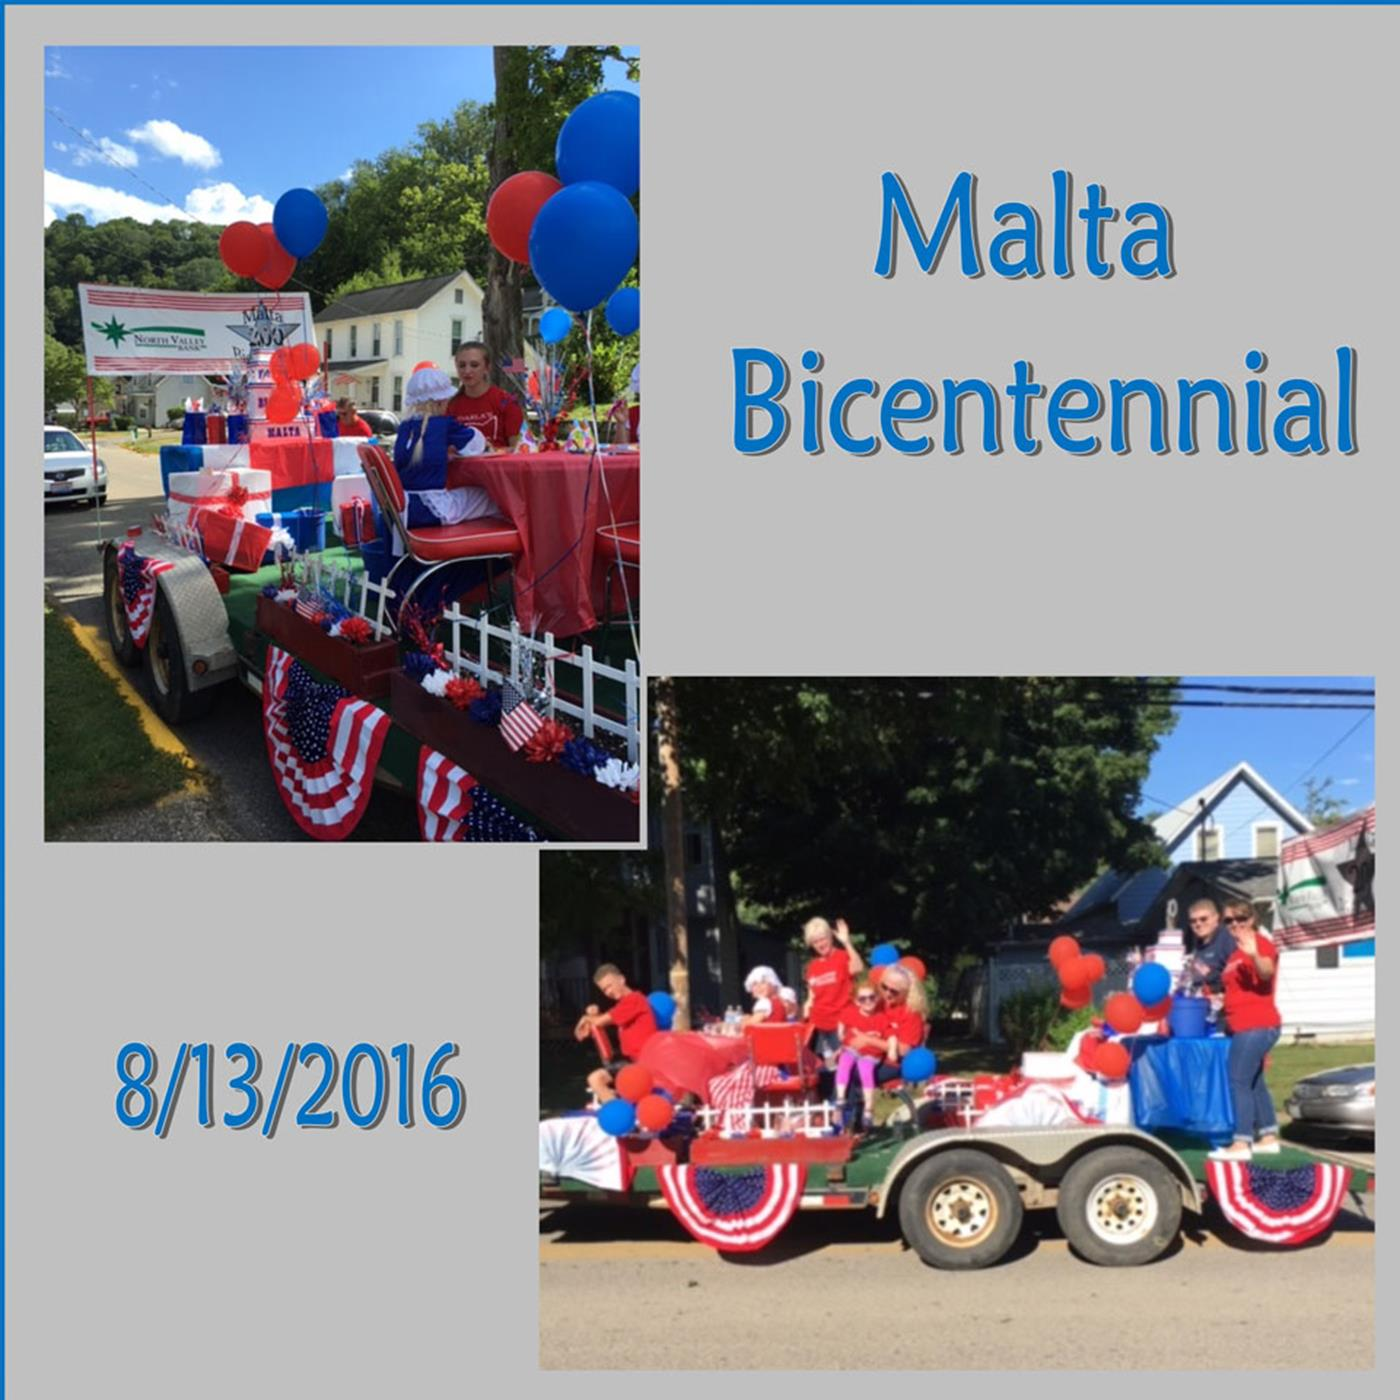 North Valley Bank Malta Bicentenial 2016